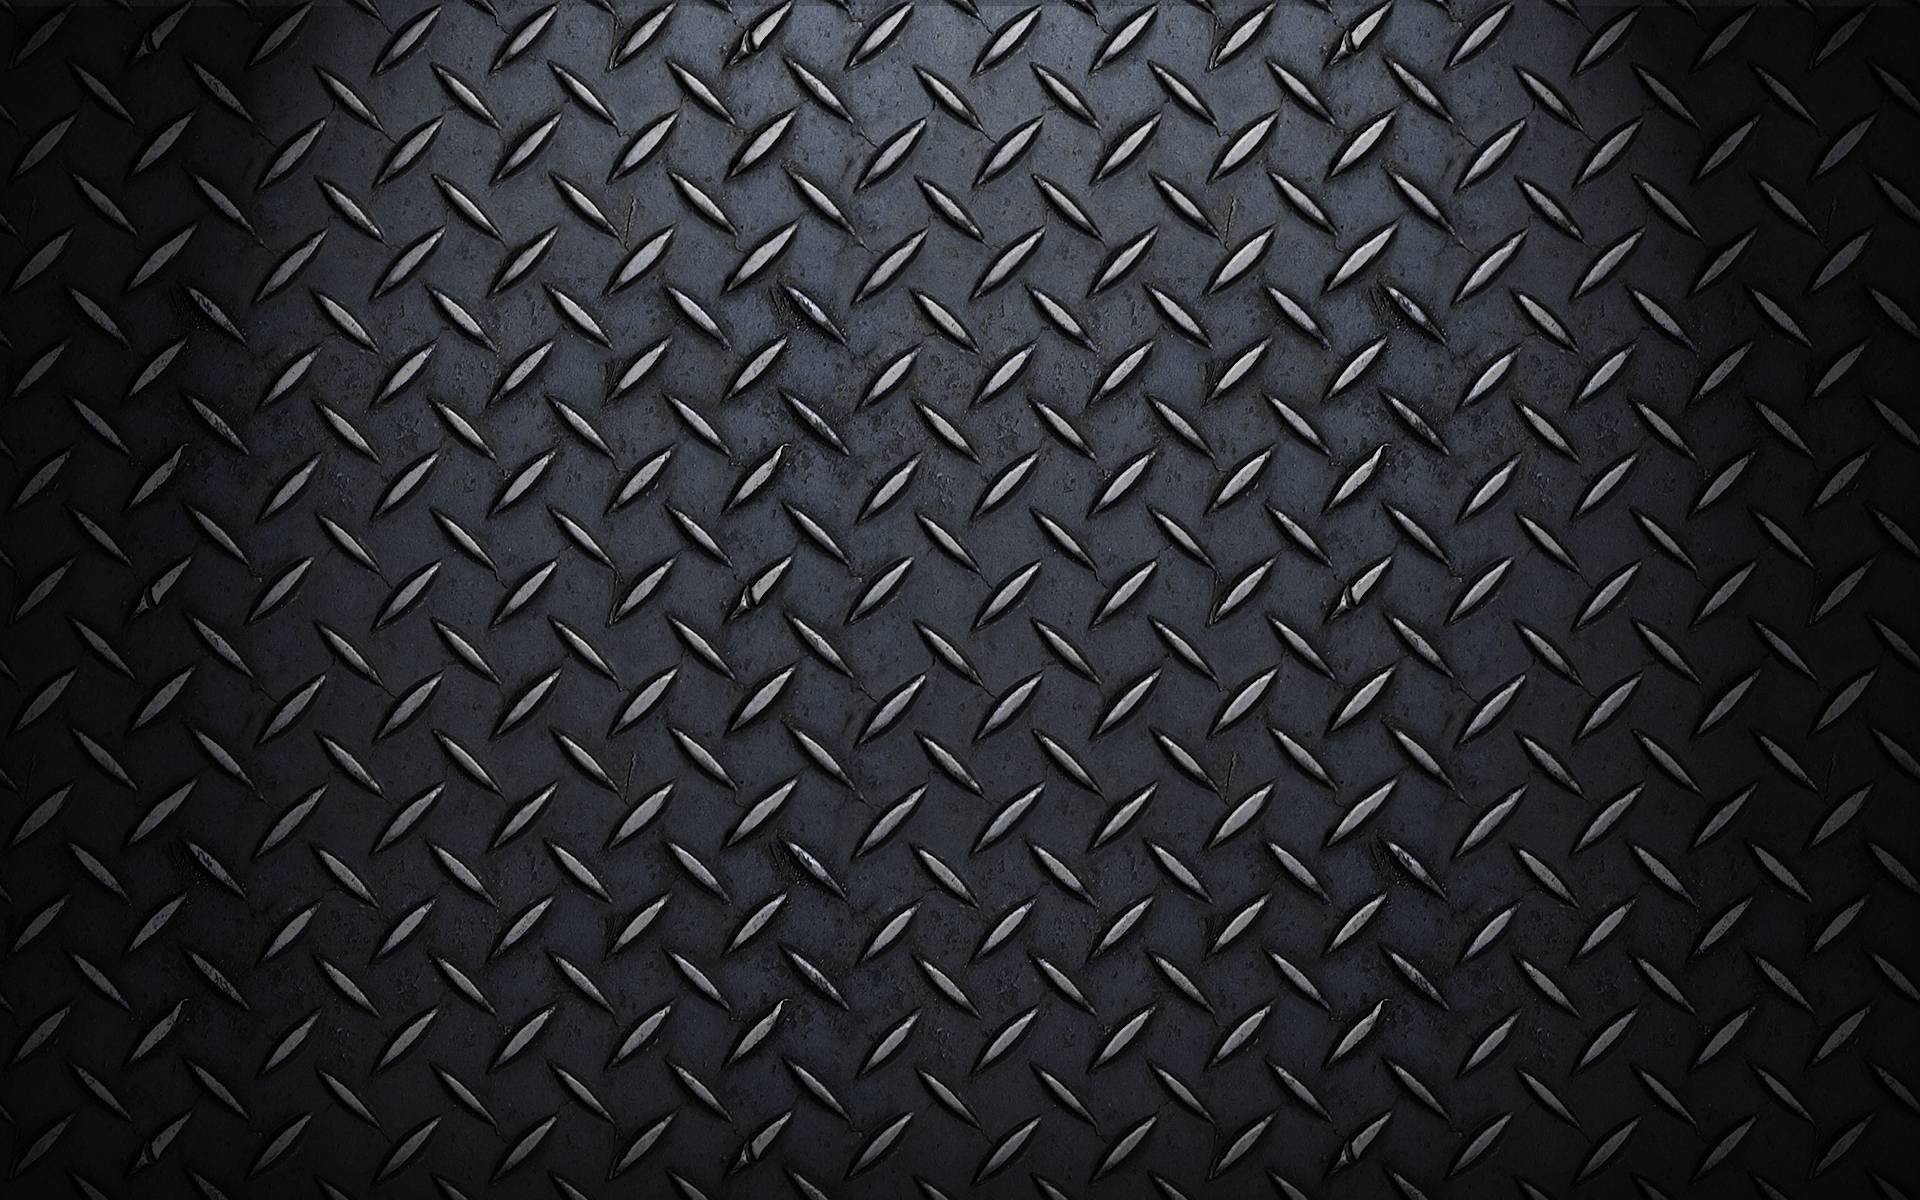 Dark Silver Metallic Texture | Background and Texture